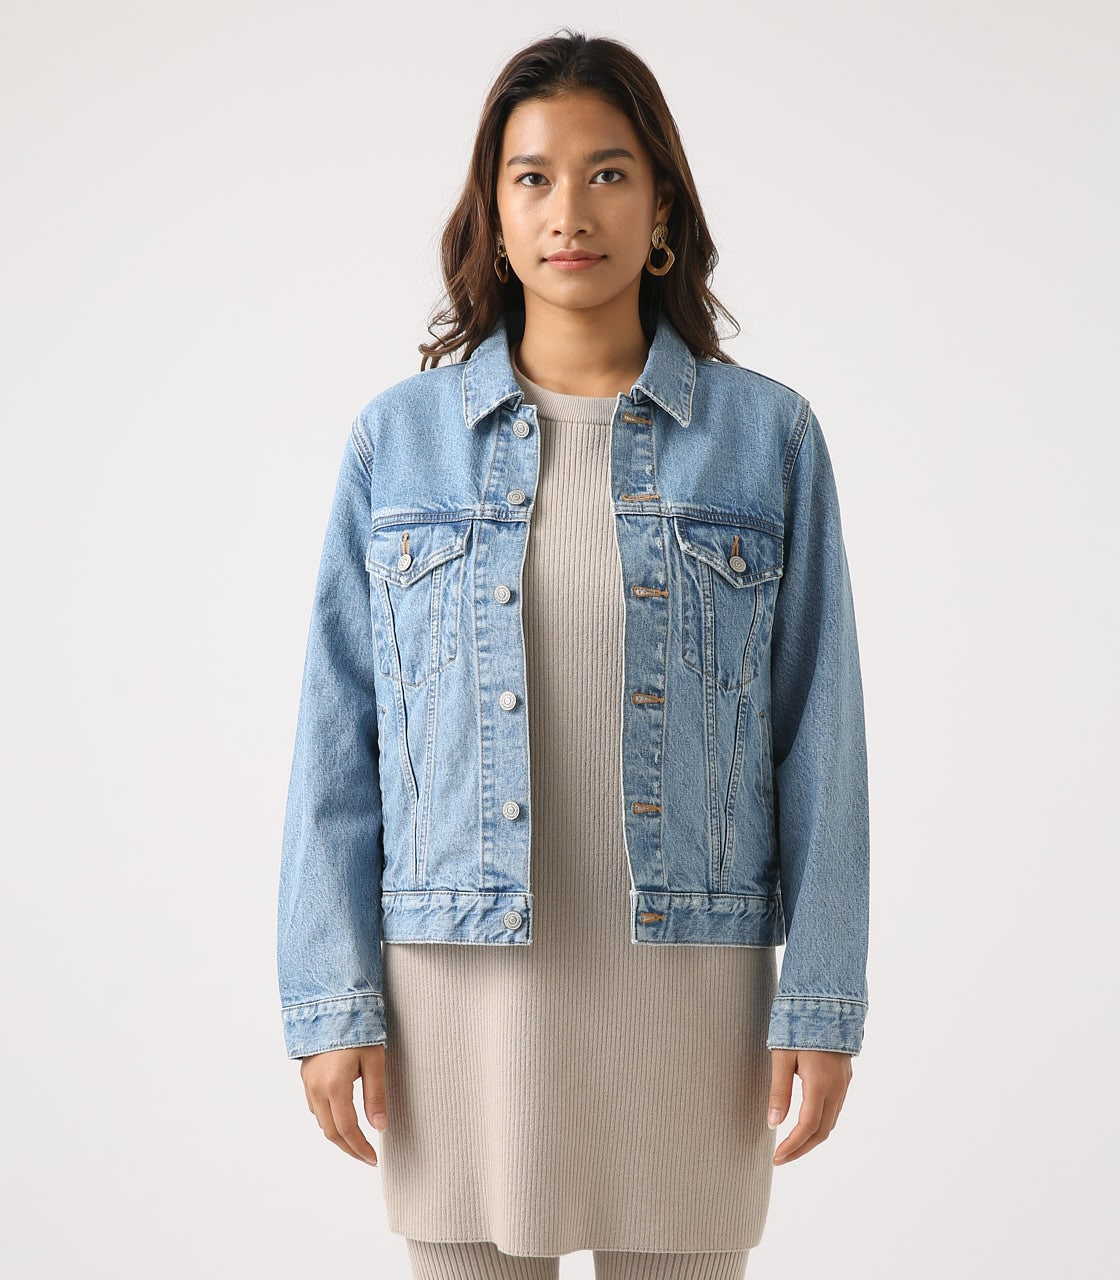 【AZUL BY MOUSSY】DENIM JACKET 詳細画像 L/BLU 5